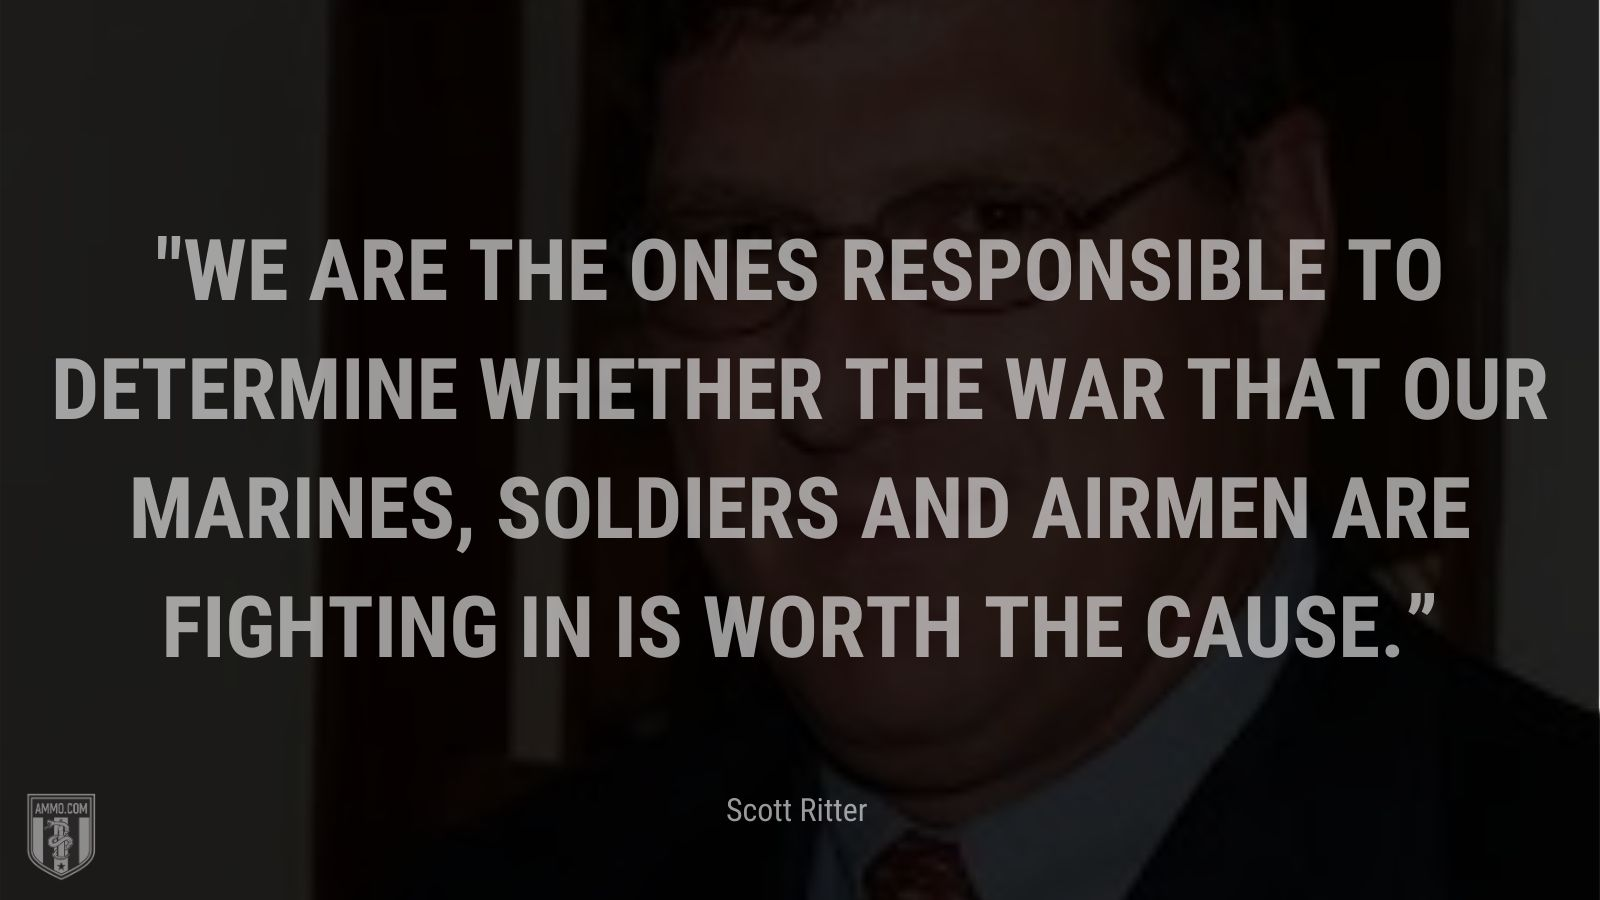 """""""We are the ones responsible to determine whether the war that our marines, soldiers and airmen are fighting in is worth the cause."""" - Scott Ritter"""